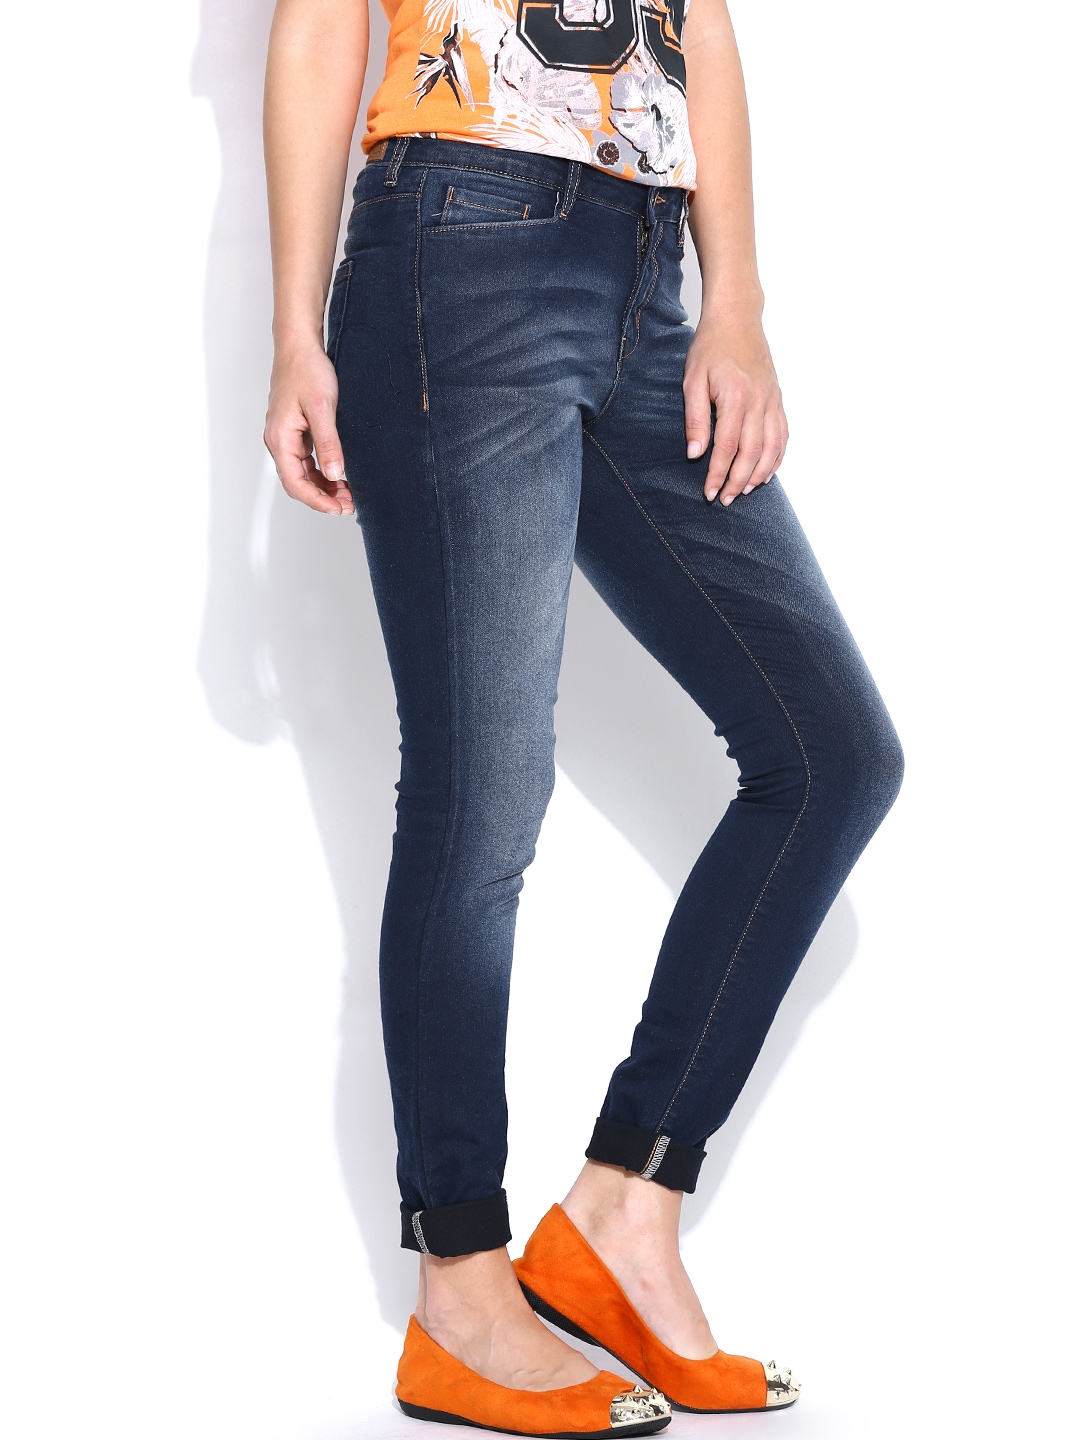 myntra vero moda women navy skinny fit jeans 751950 buy myntra vero moda jeans at best price. Black Bedroom Furniture Sets. Home Design Ideas